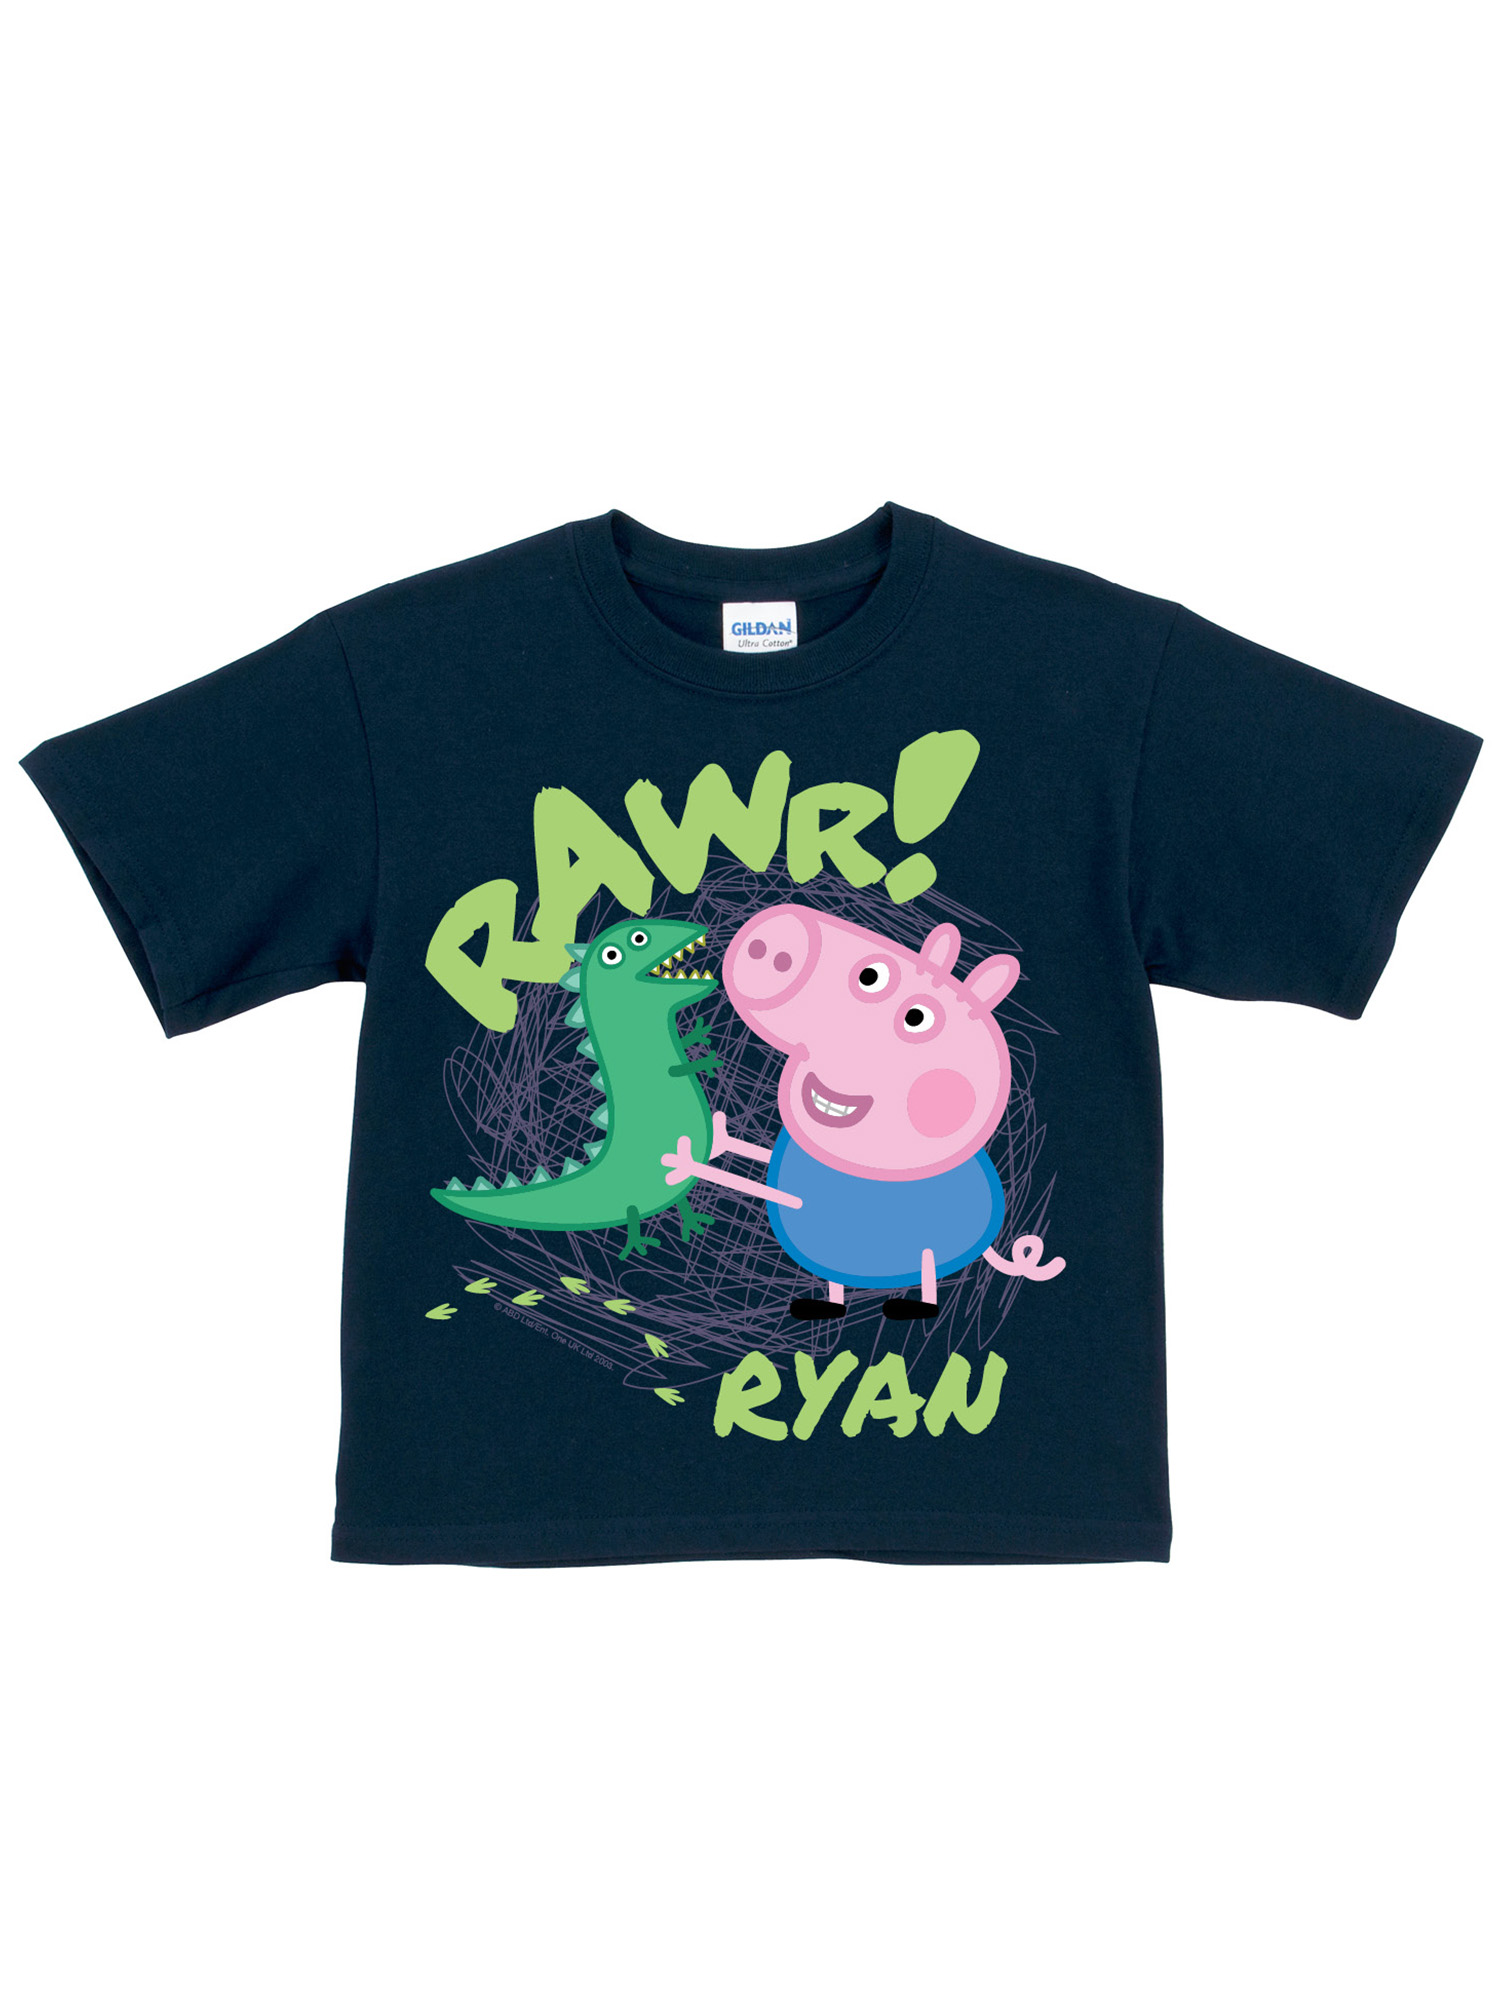 Personalized Peppa Pig George Rawr Navy Toddler Boys' T-Shirt